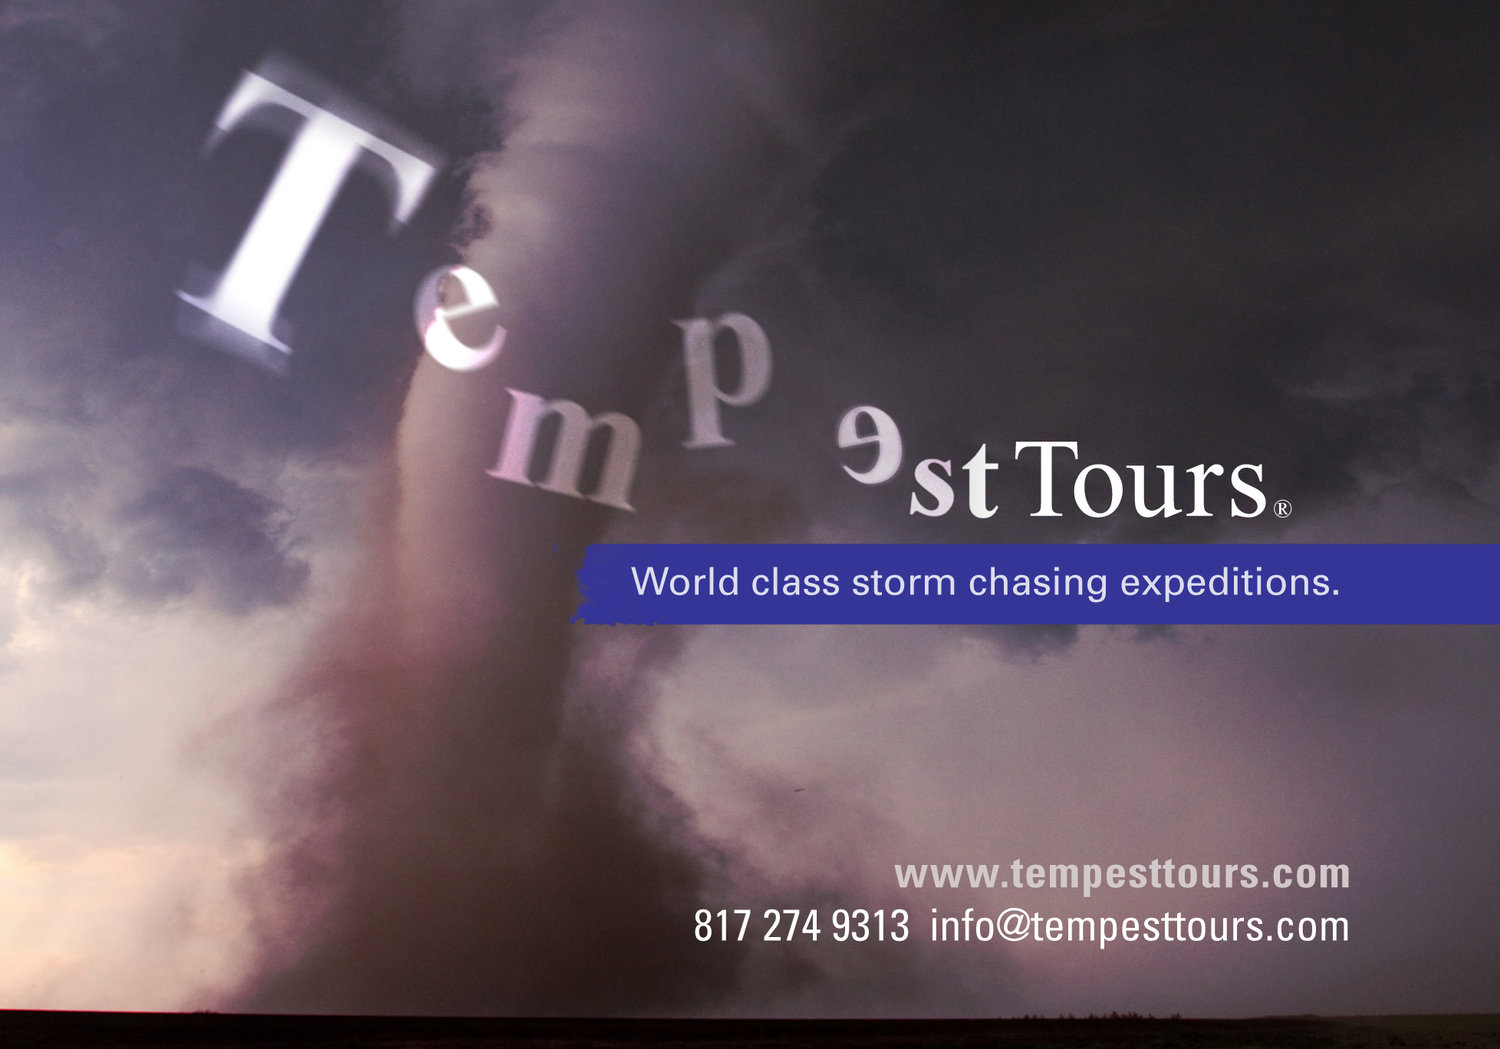 Tempest_Tours_half_square_Tempest+Tours+Storm+Chasing+Expeditions+www.tempesttours.com.jpg